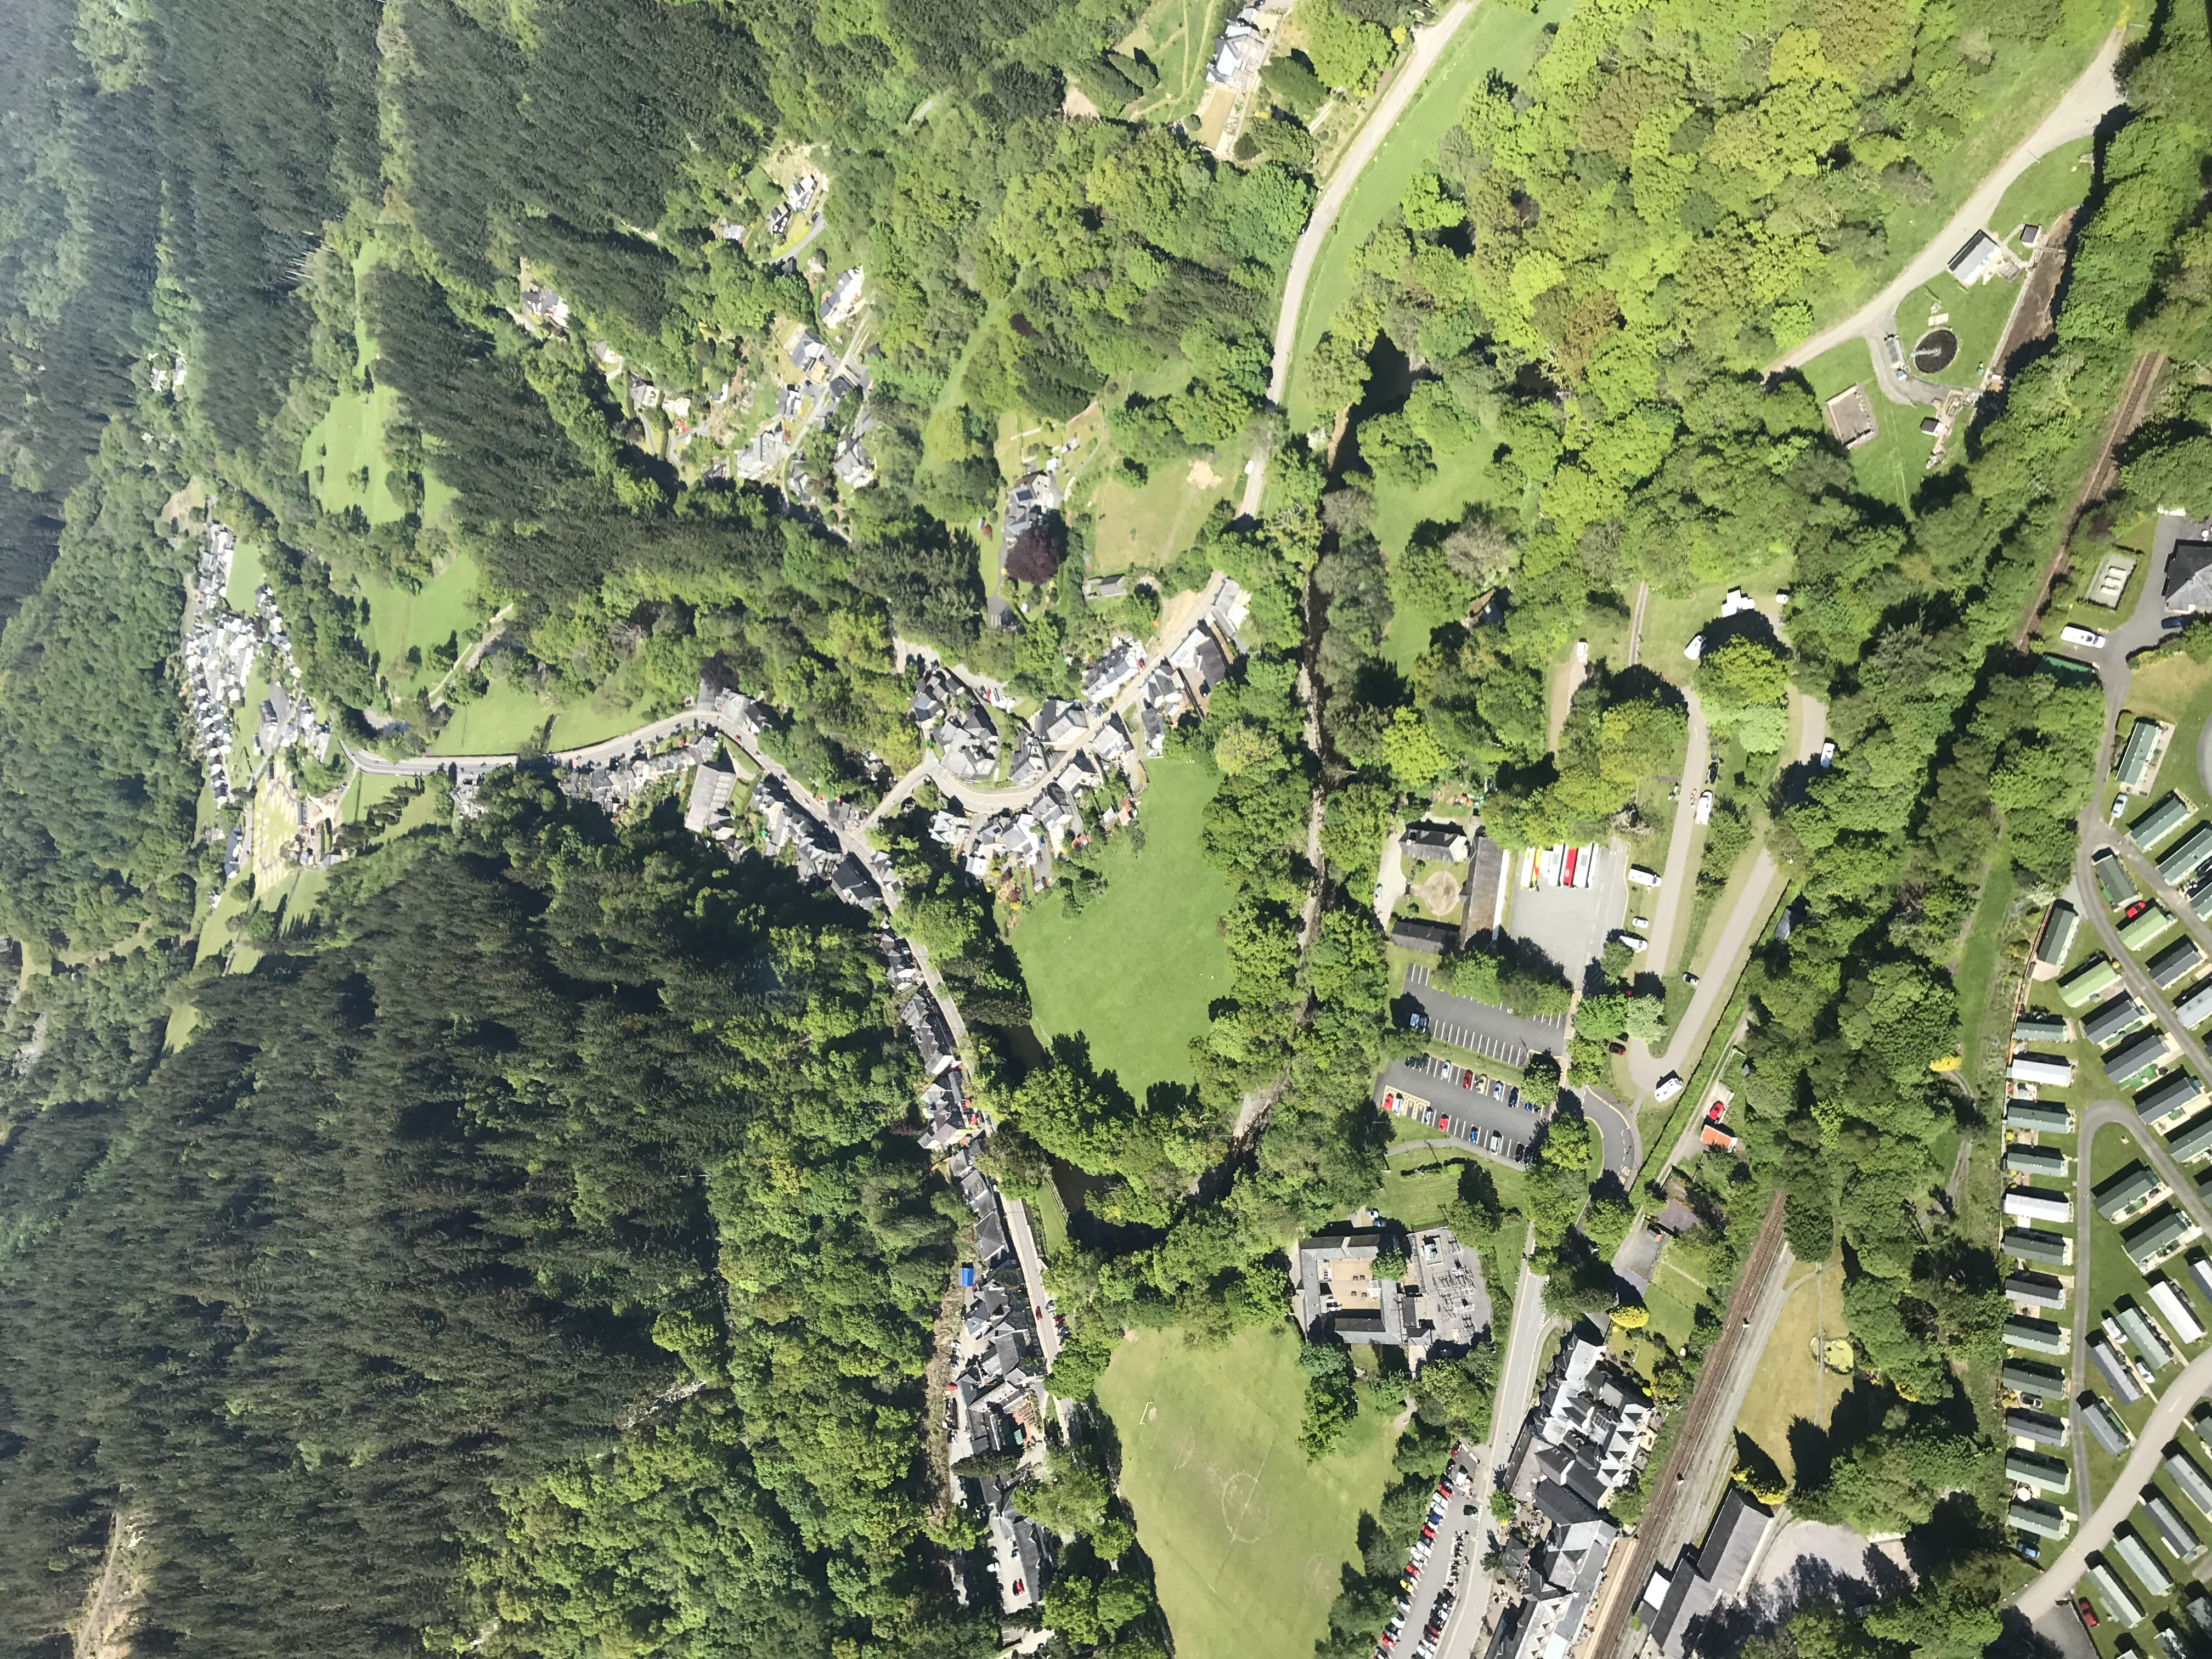 Betws-y-Coed from the sky